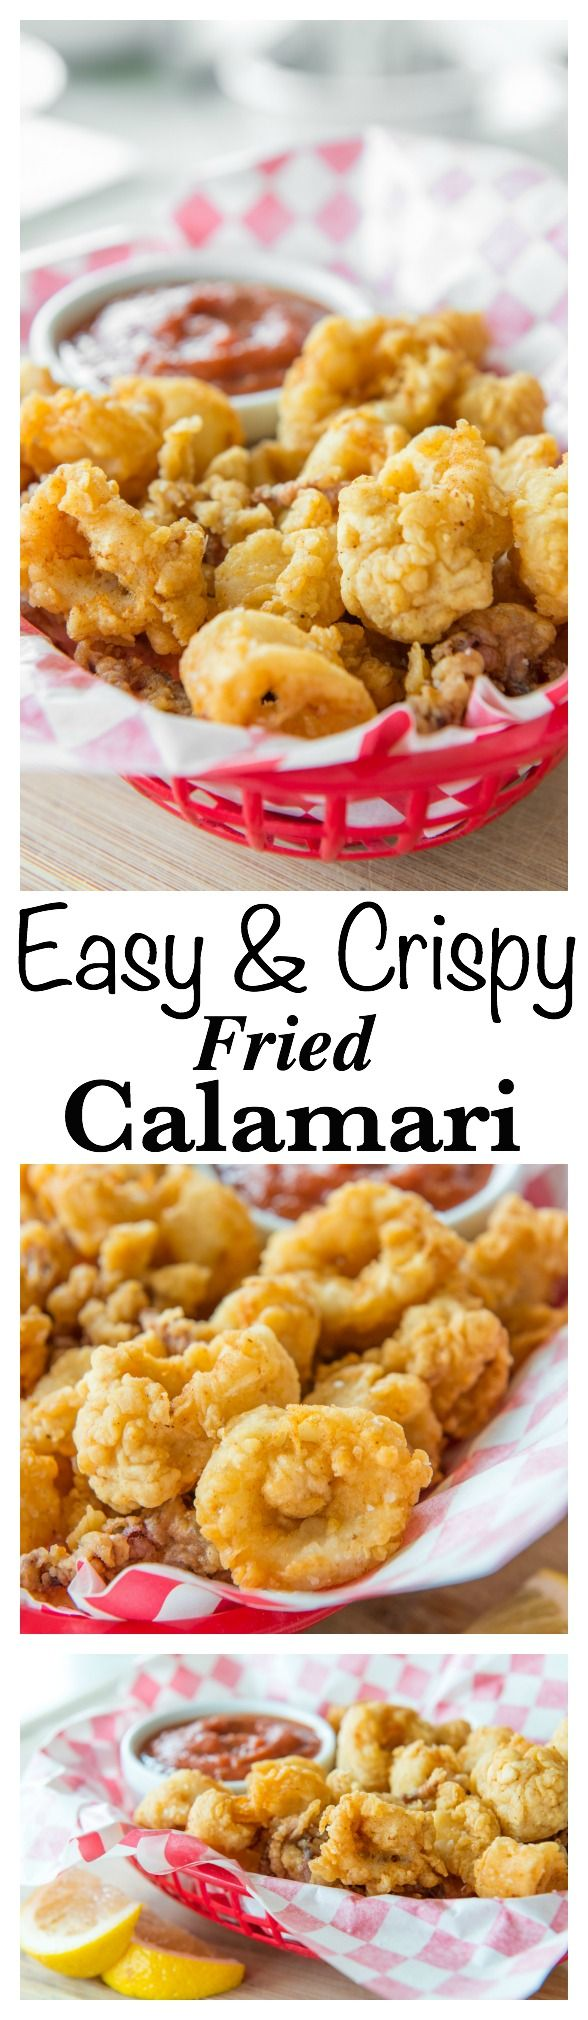 Crispy Fried Calamari is easy to make at home! This recipe gives the crispiest coating